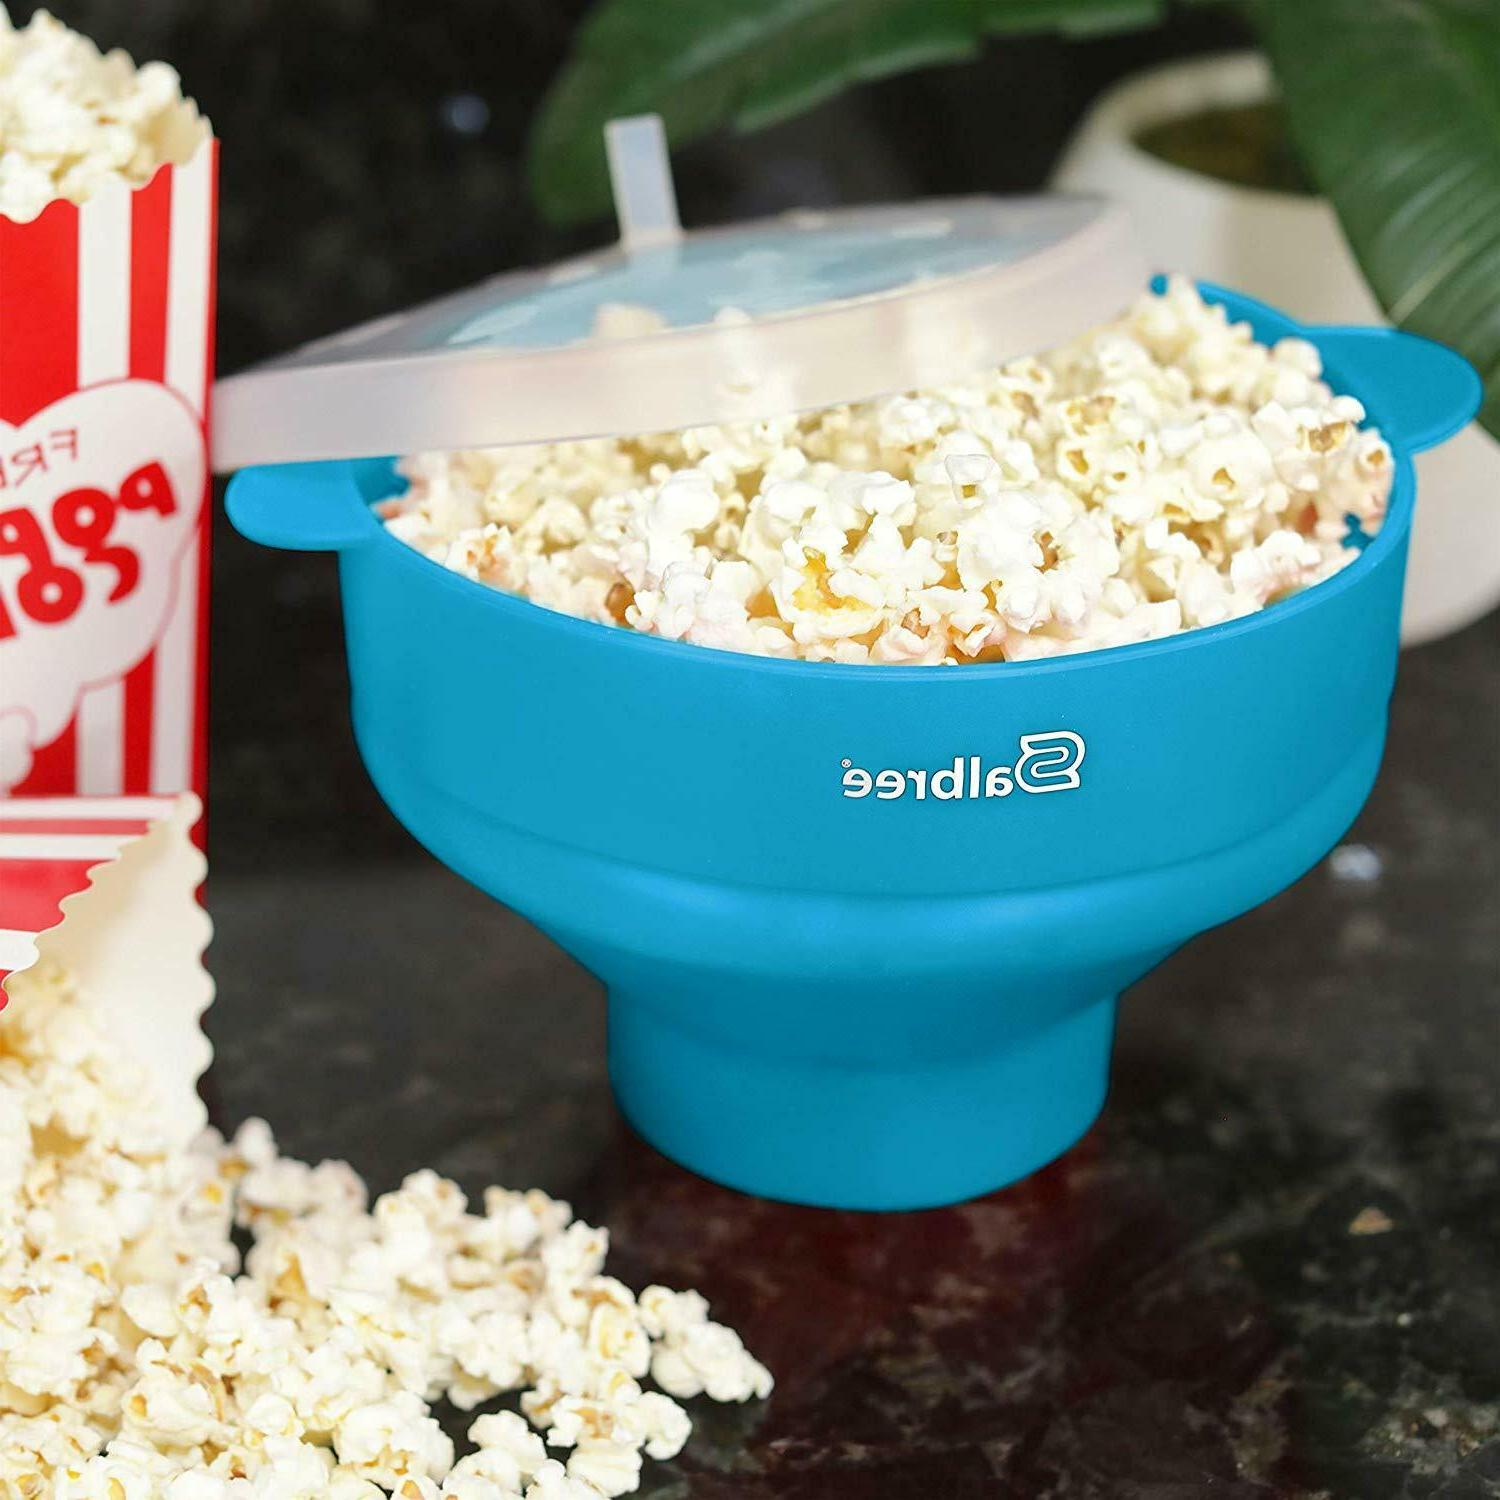 Popcorn Popcorn Maker Kitchen Bowl